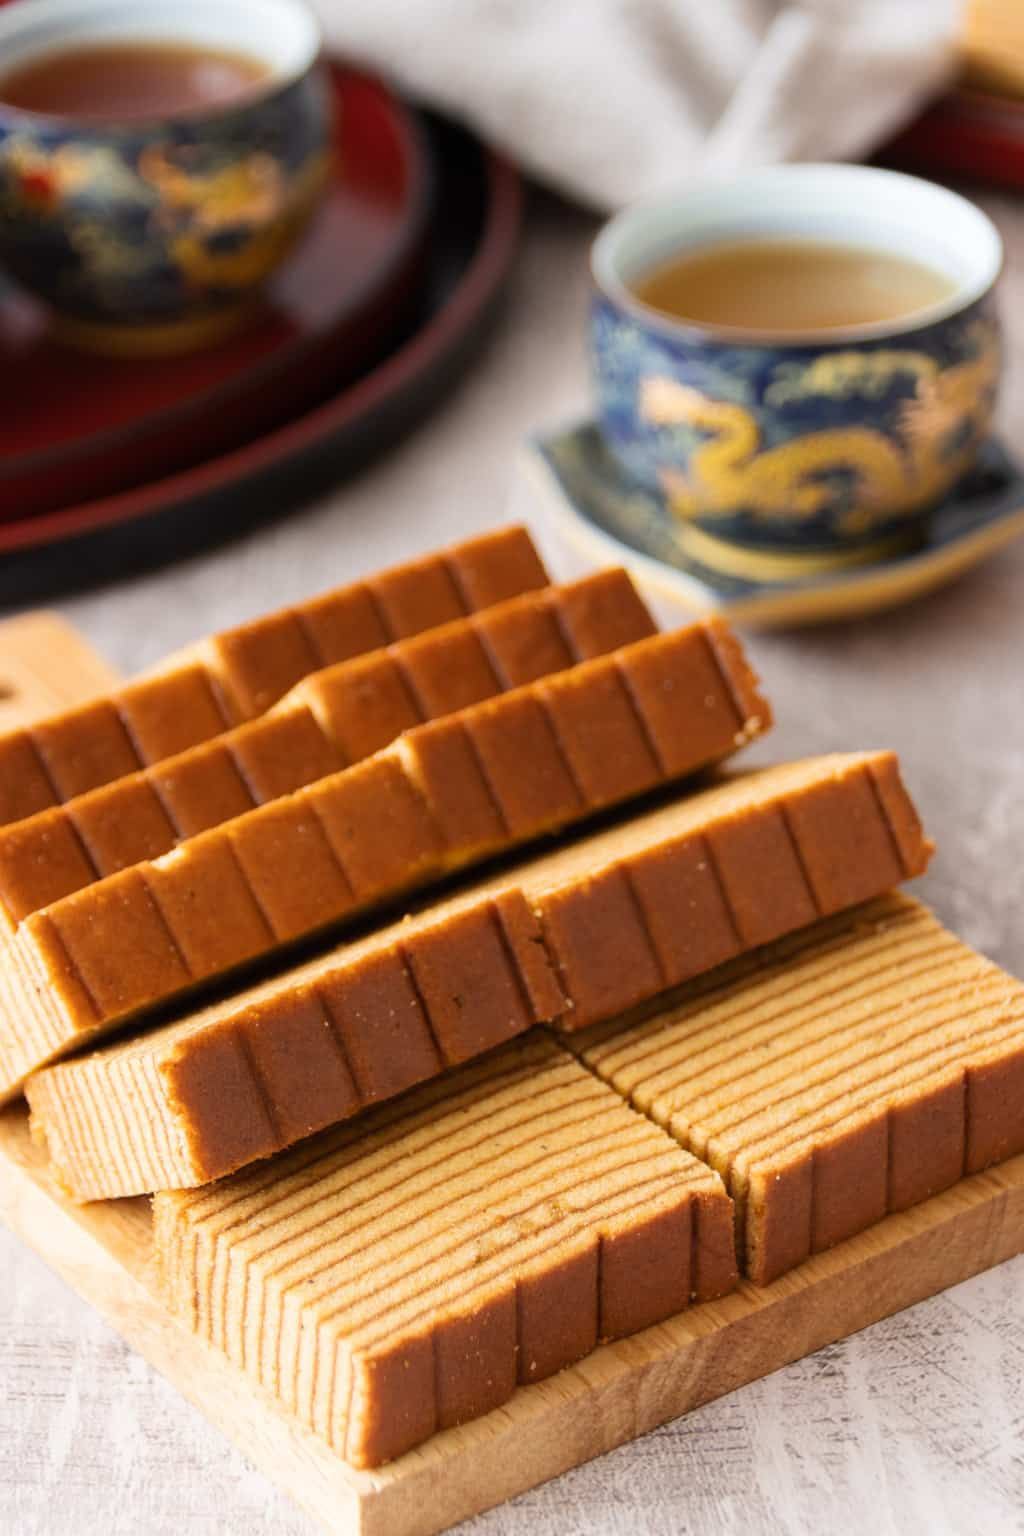 Indonesian layer cake slices, showing the layer pattern